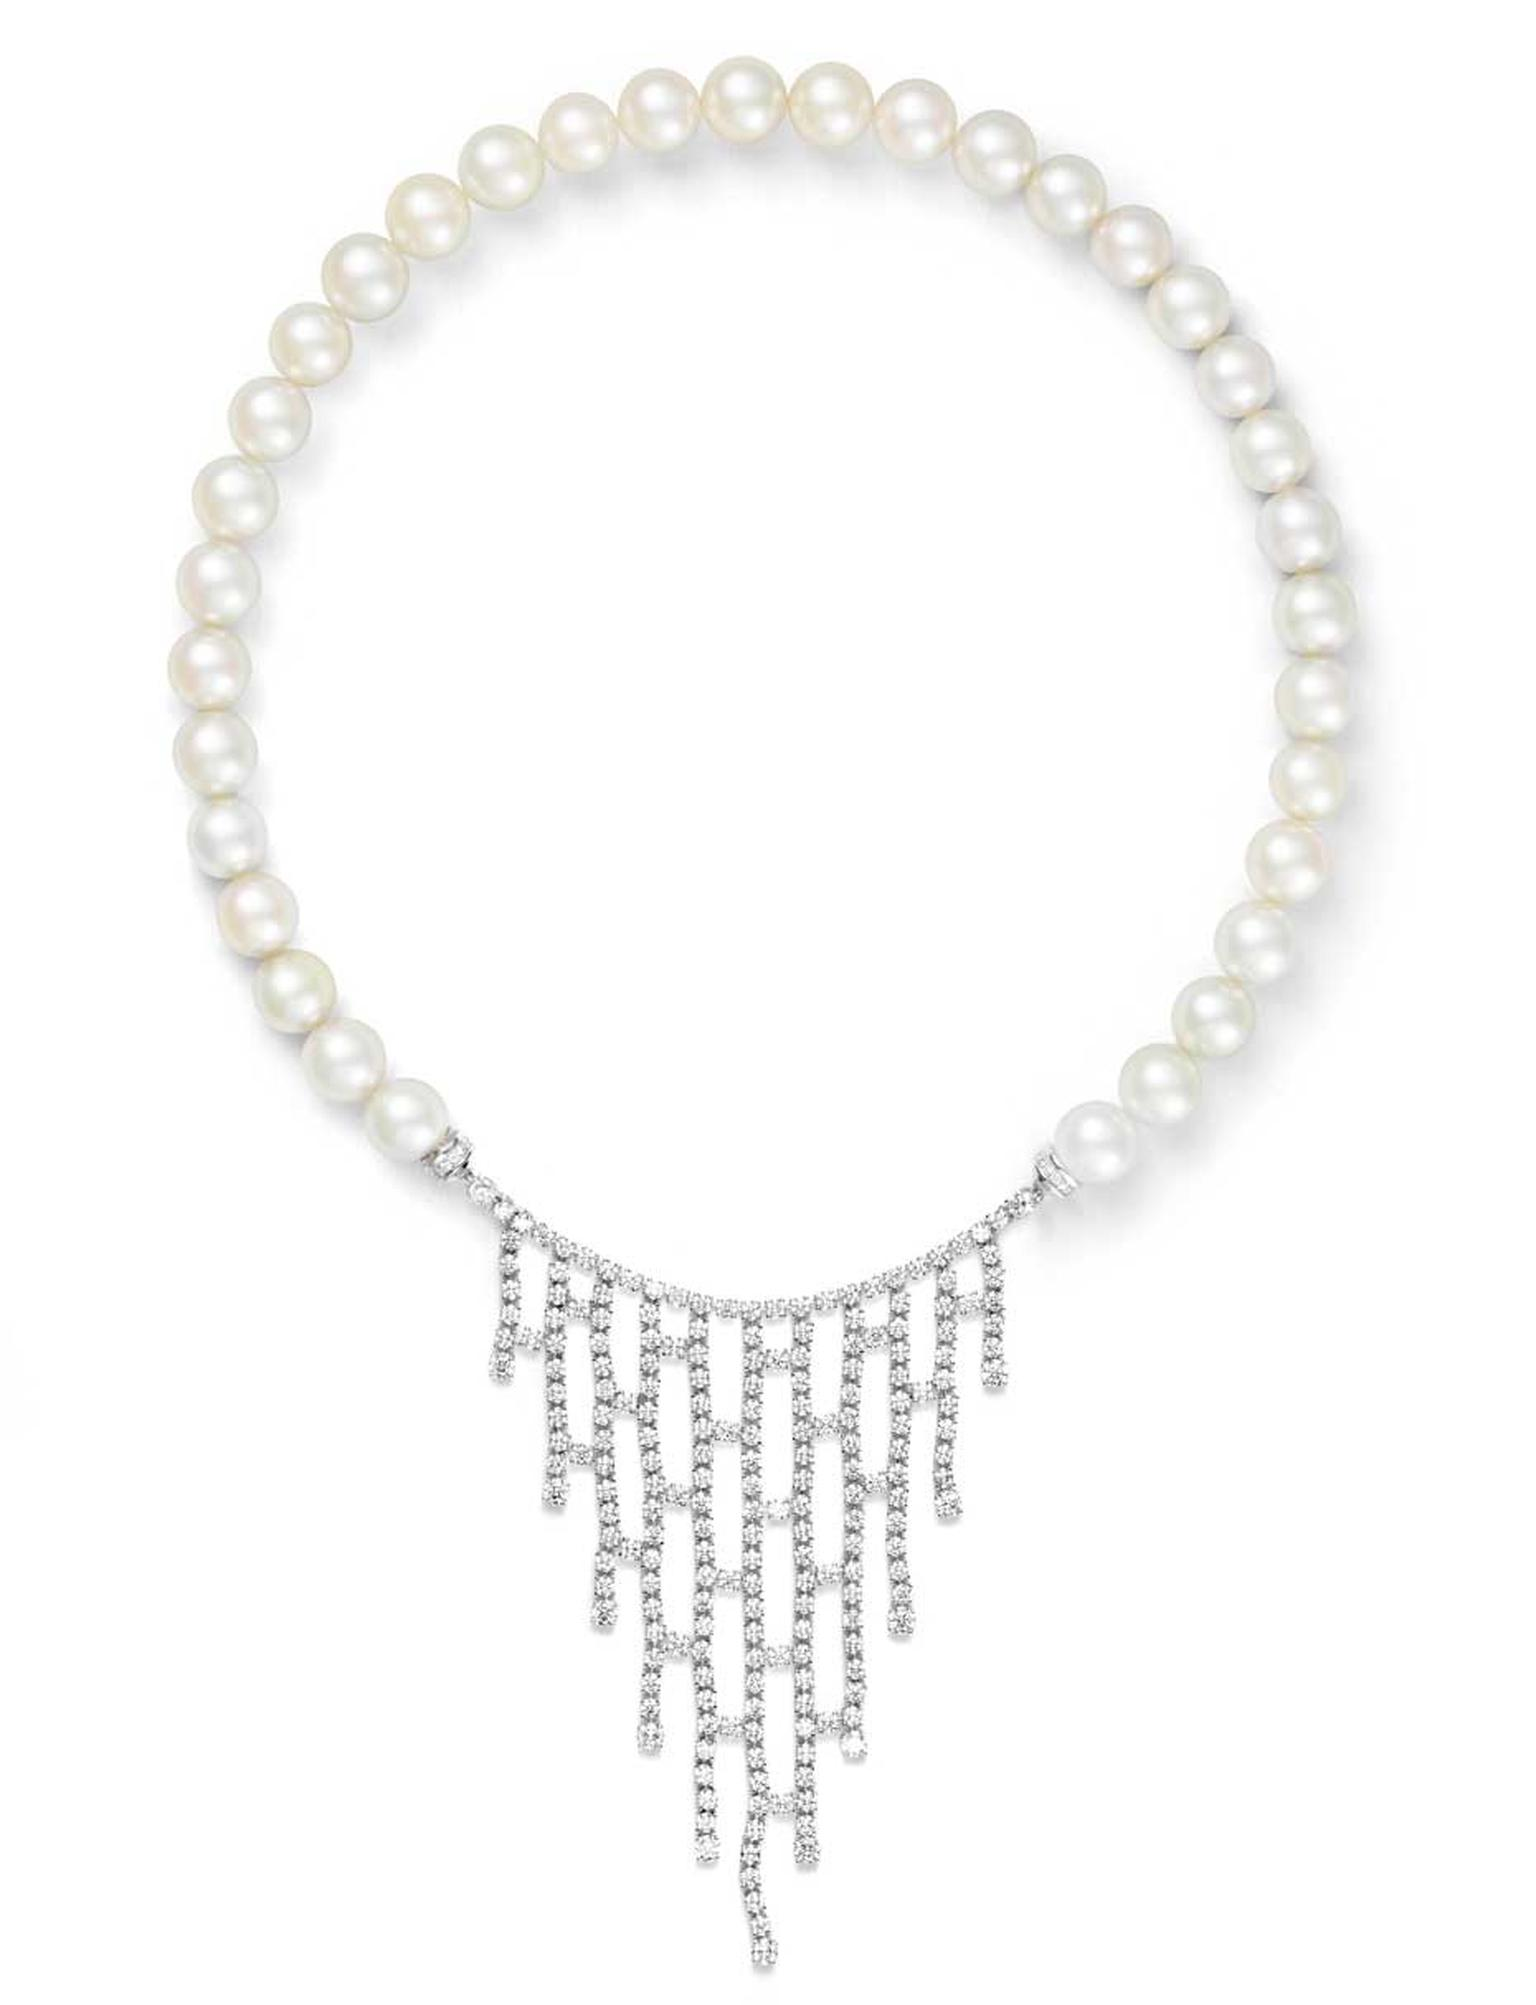 Alexander Arne pearl and diamond necklace, from the Transformer collection, which can be disassembled and worn as a pearl strand.